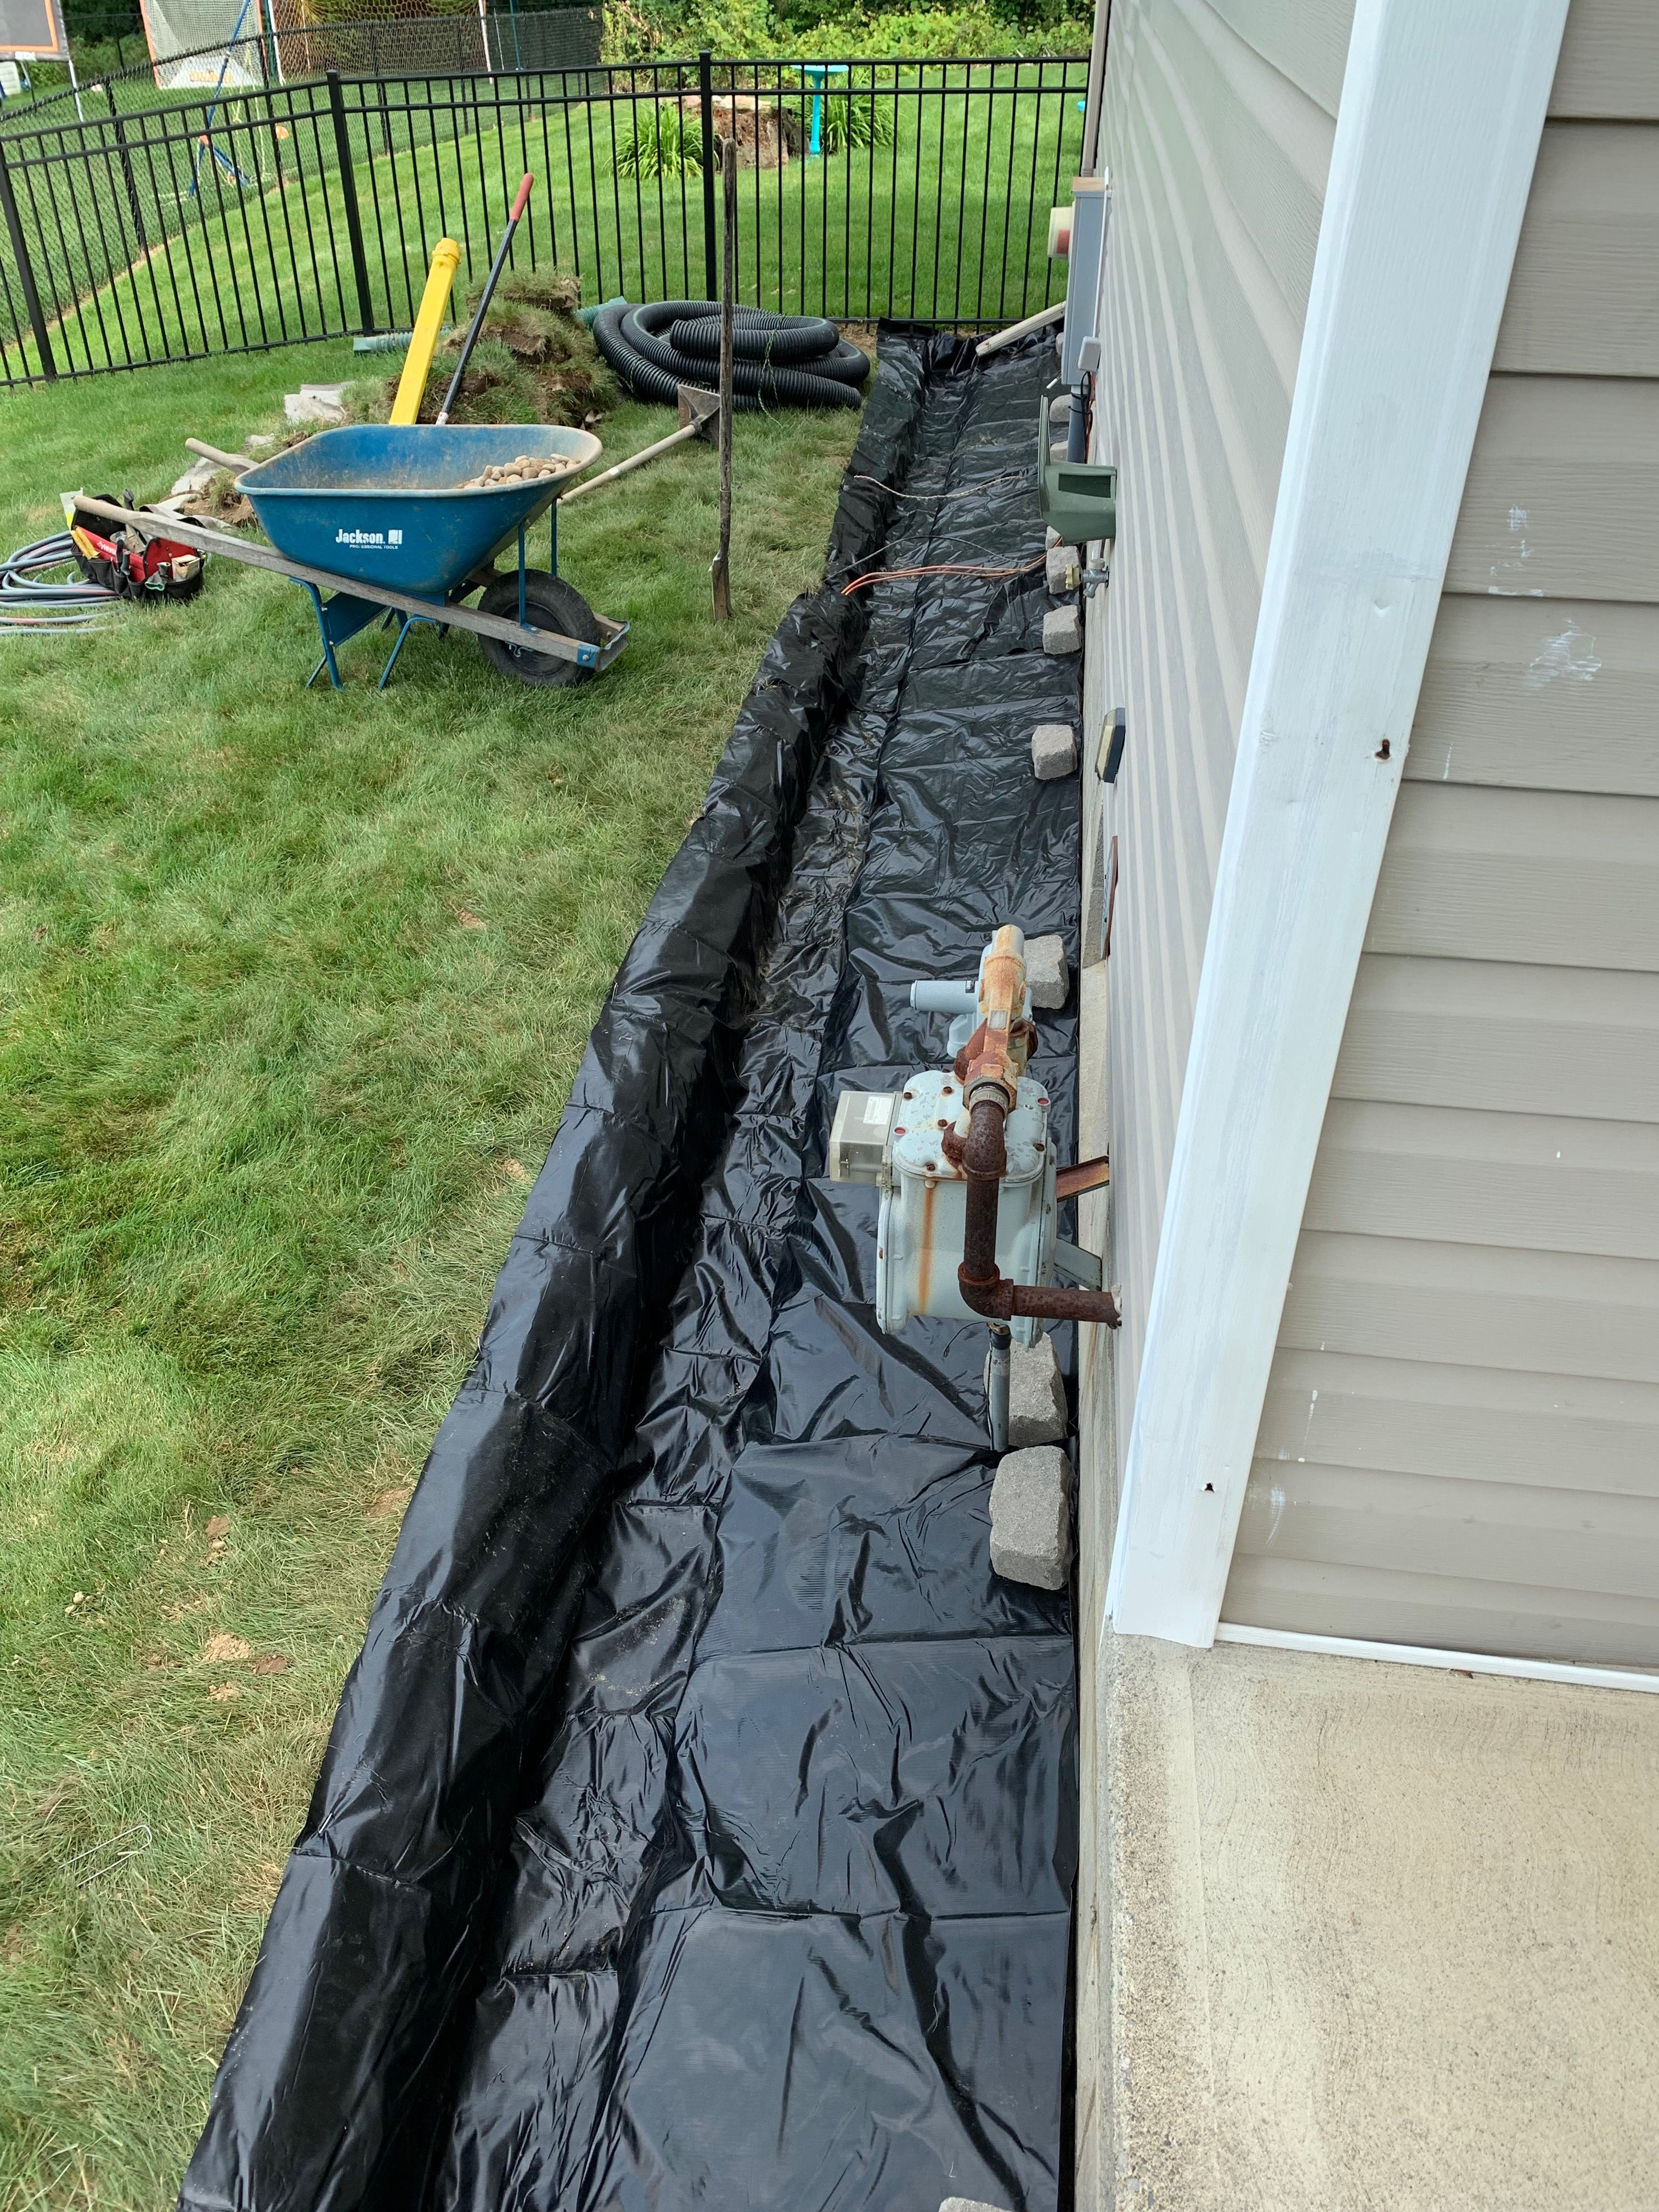 Water Collection French Drain System Along Foundation Wall For Fixing Wet Leaking Basement Walls French Drain Yard Drainage Landscape Drainage